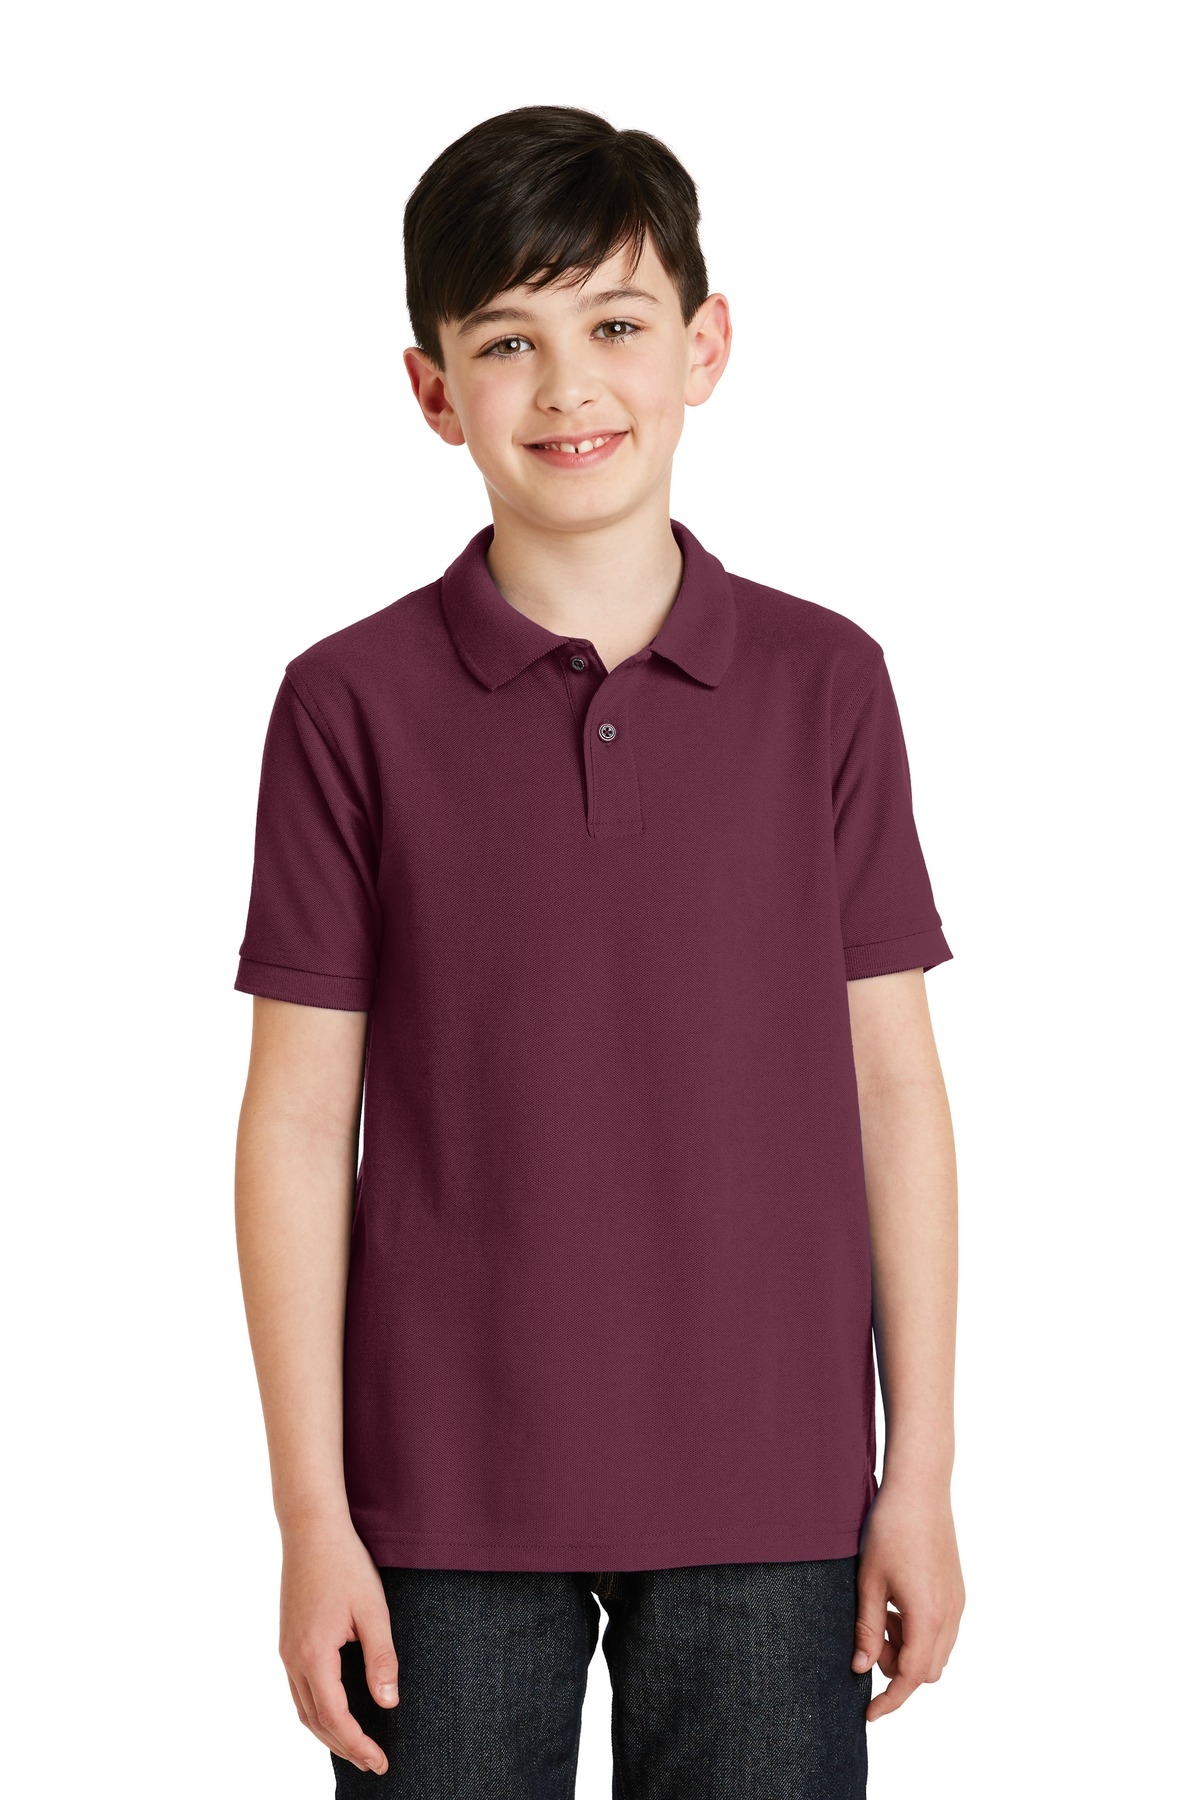 Port Authority ®  Youth Silk Touch™ Polo.  Y500 - Burgundy